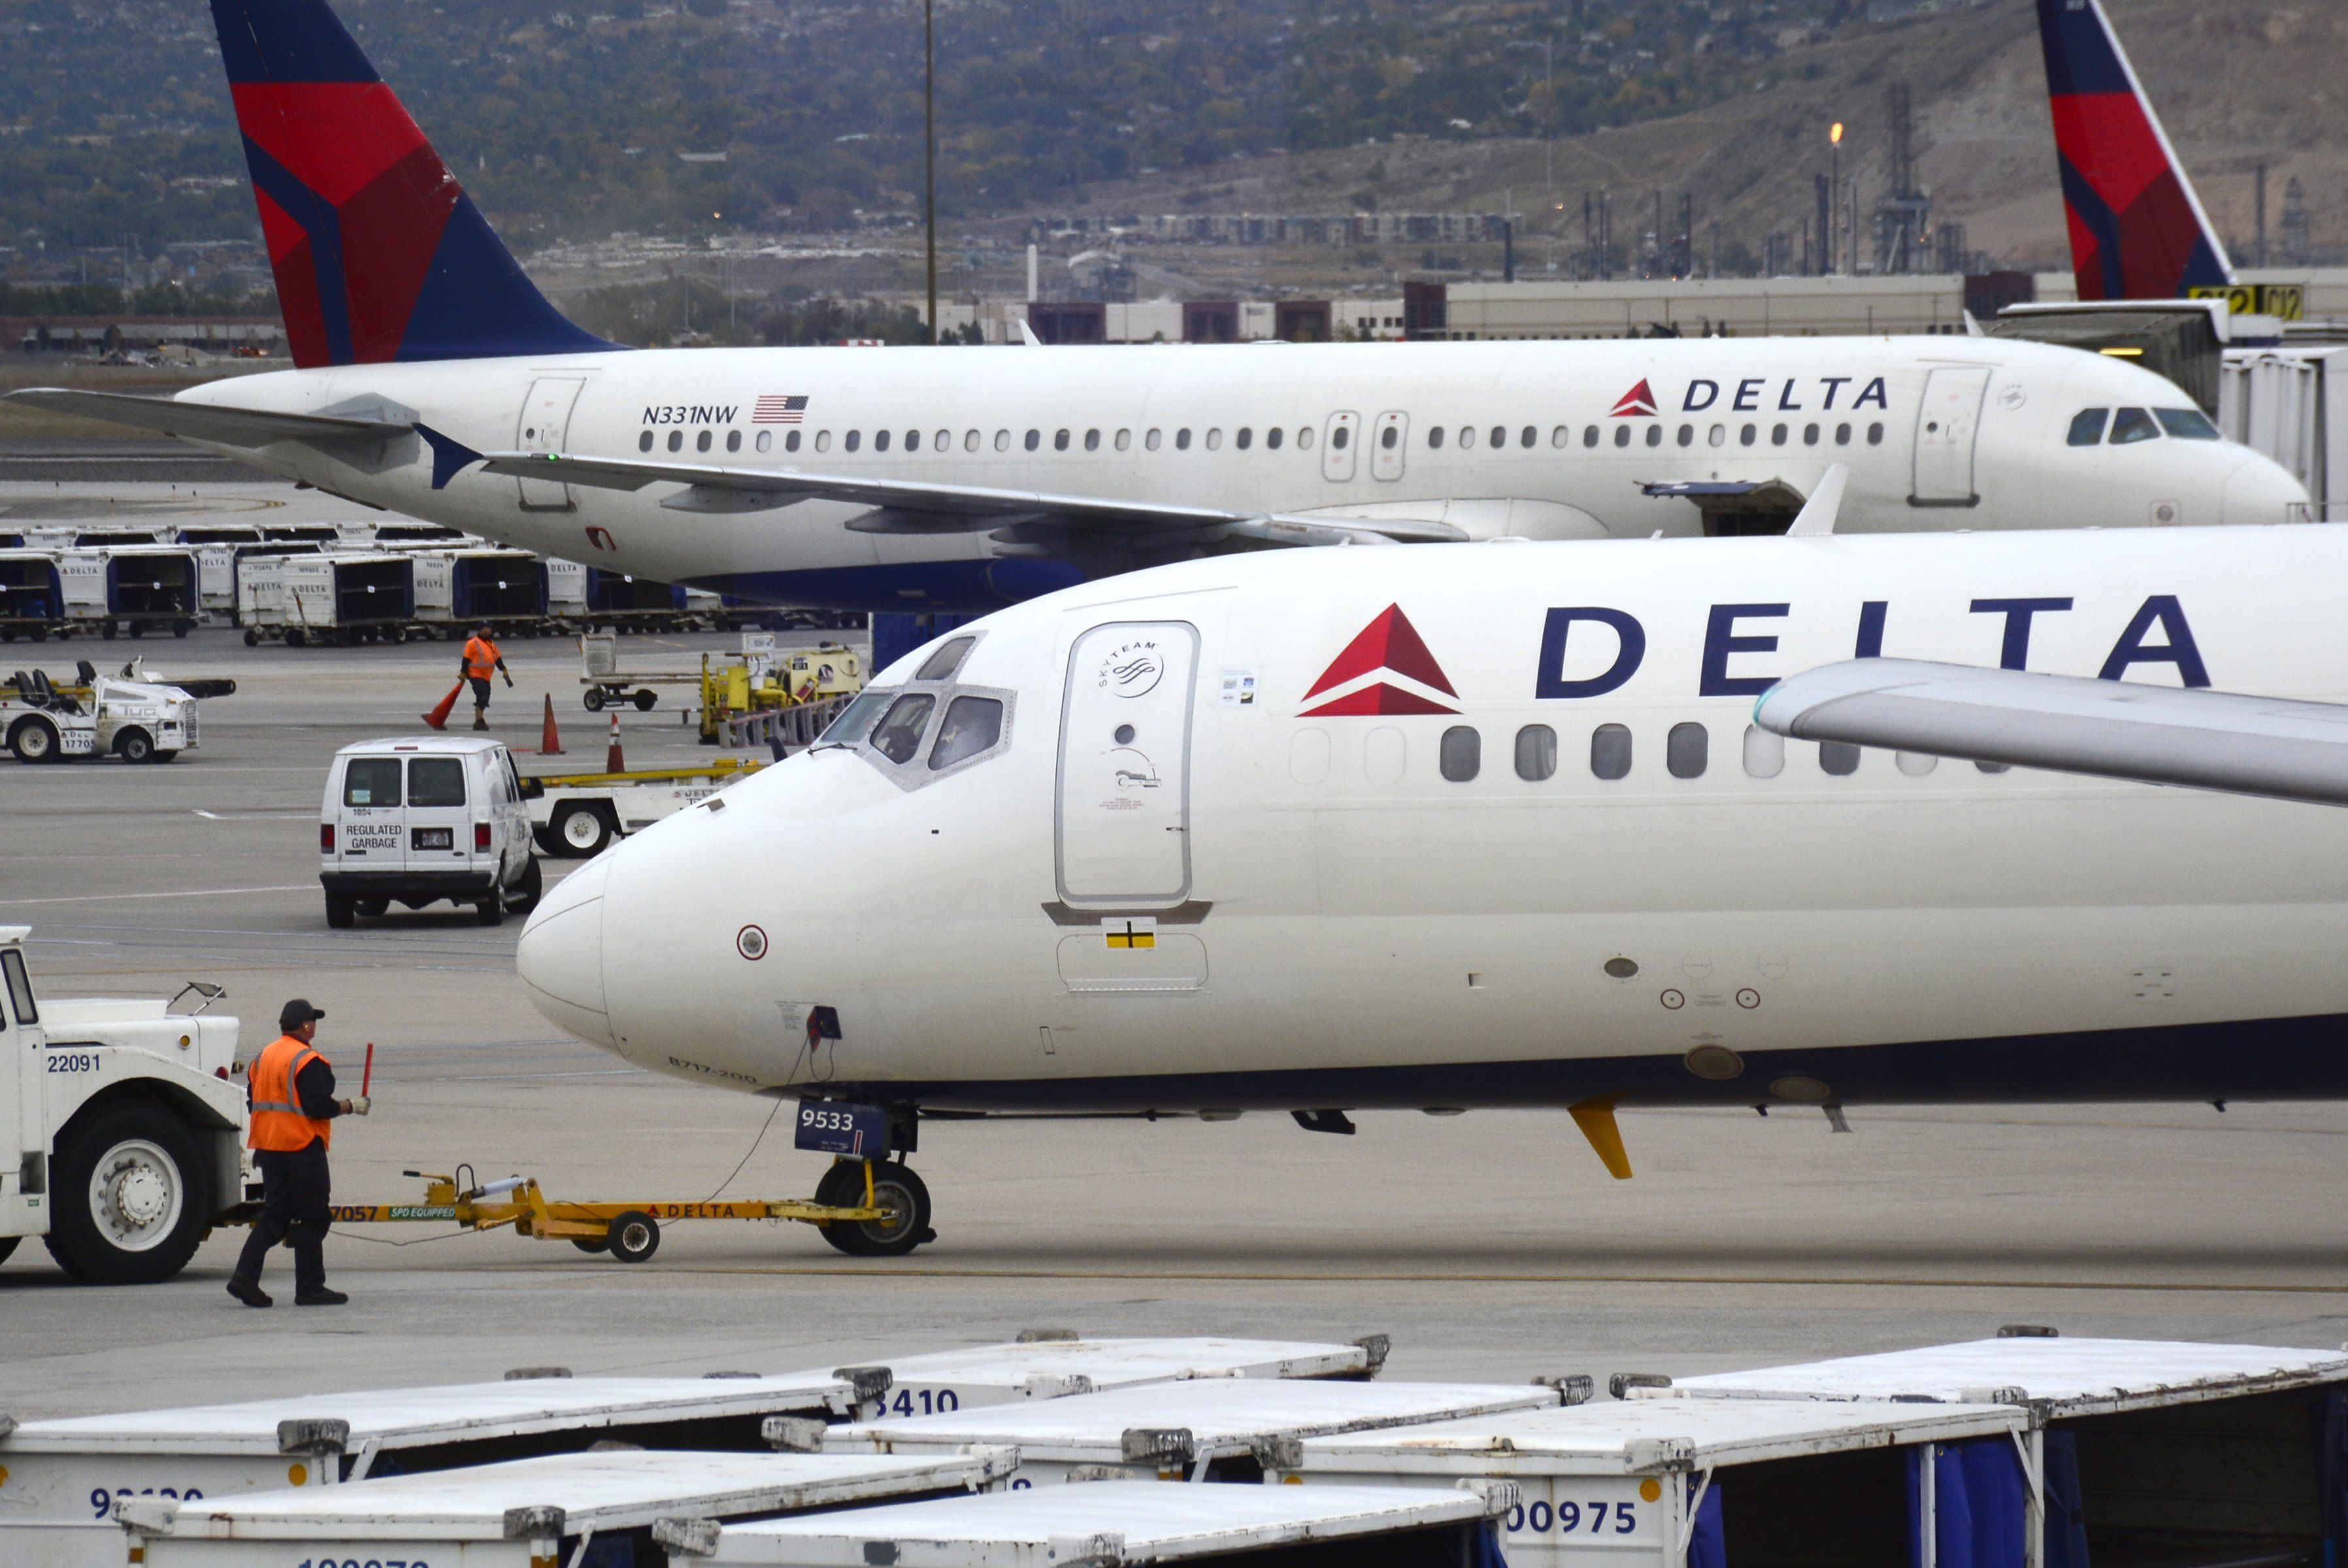 Delta Flight Attendant Applications Now You Can Apply To Be A